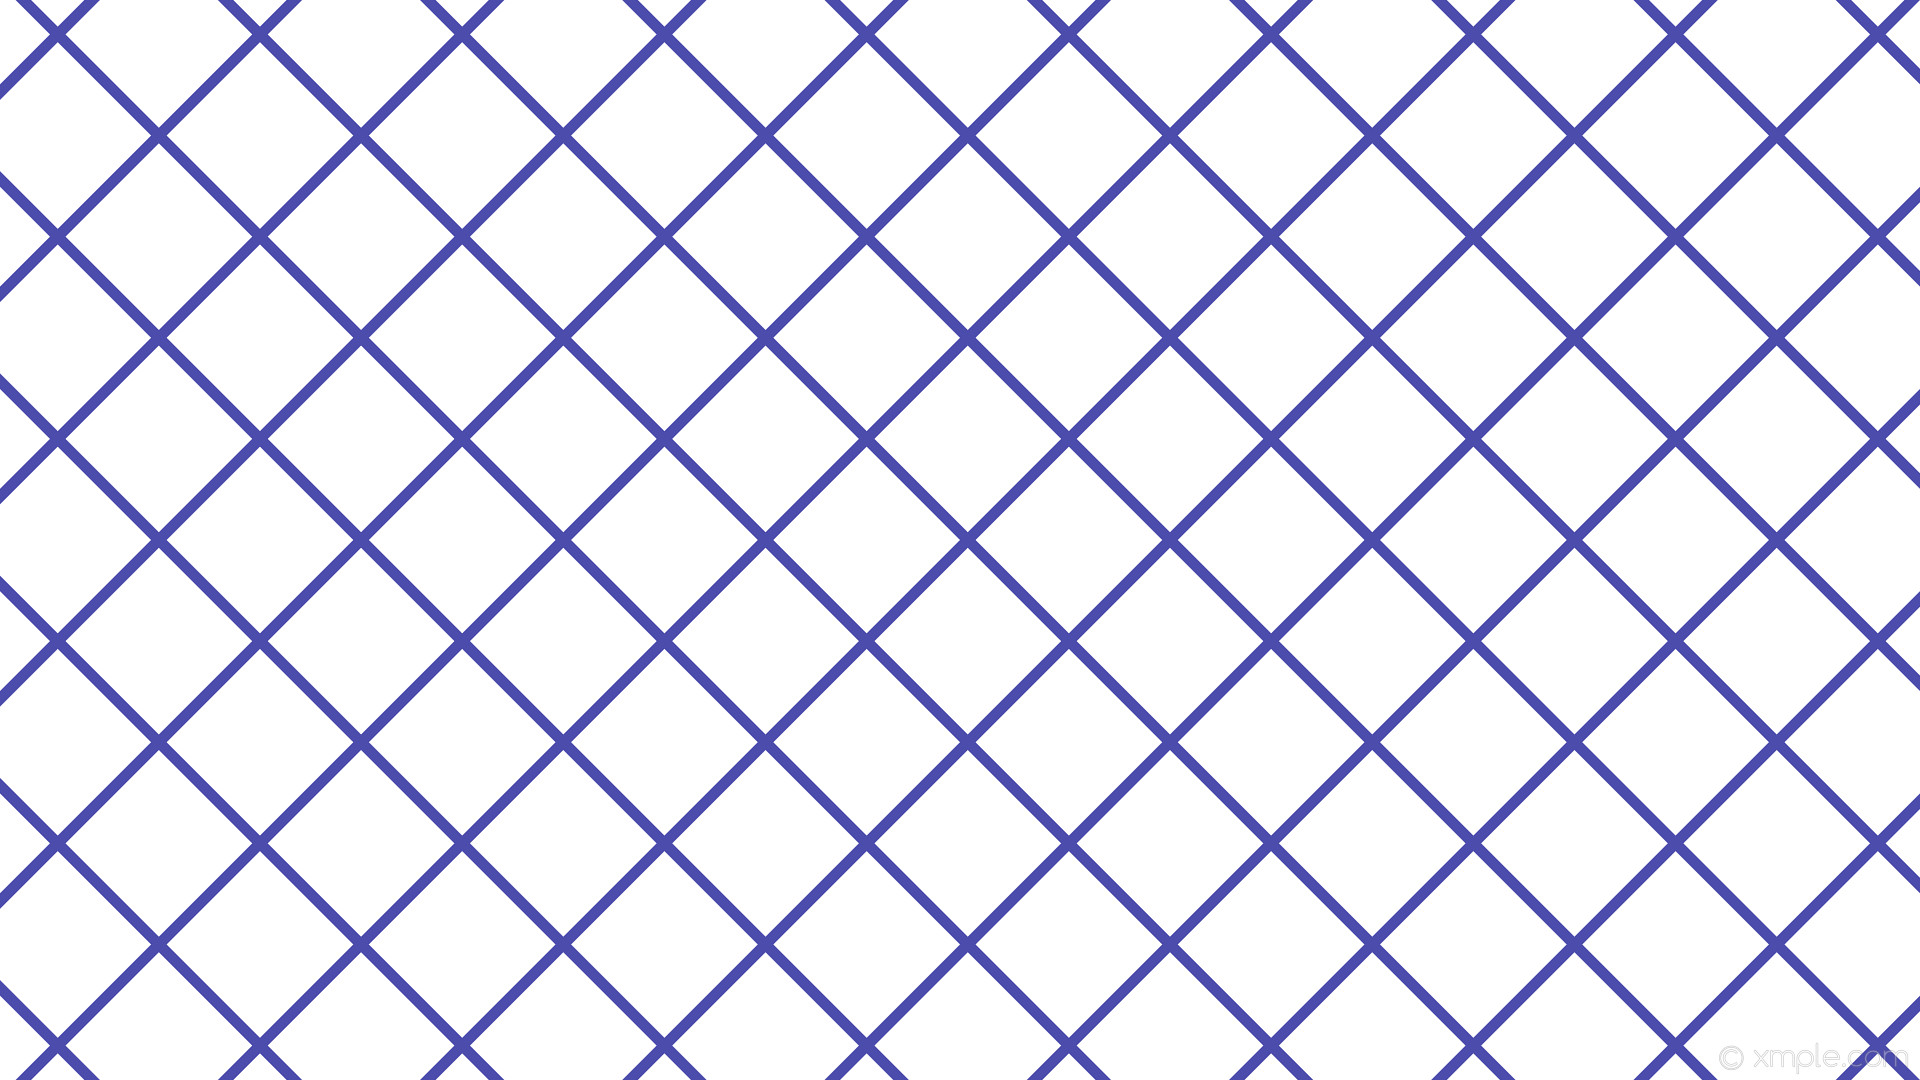 1920x1080 wallpaper graph paper white blue grid dark blue #ffffff #00008b 45° 11px  143px